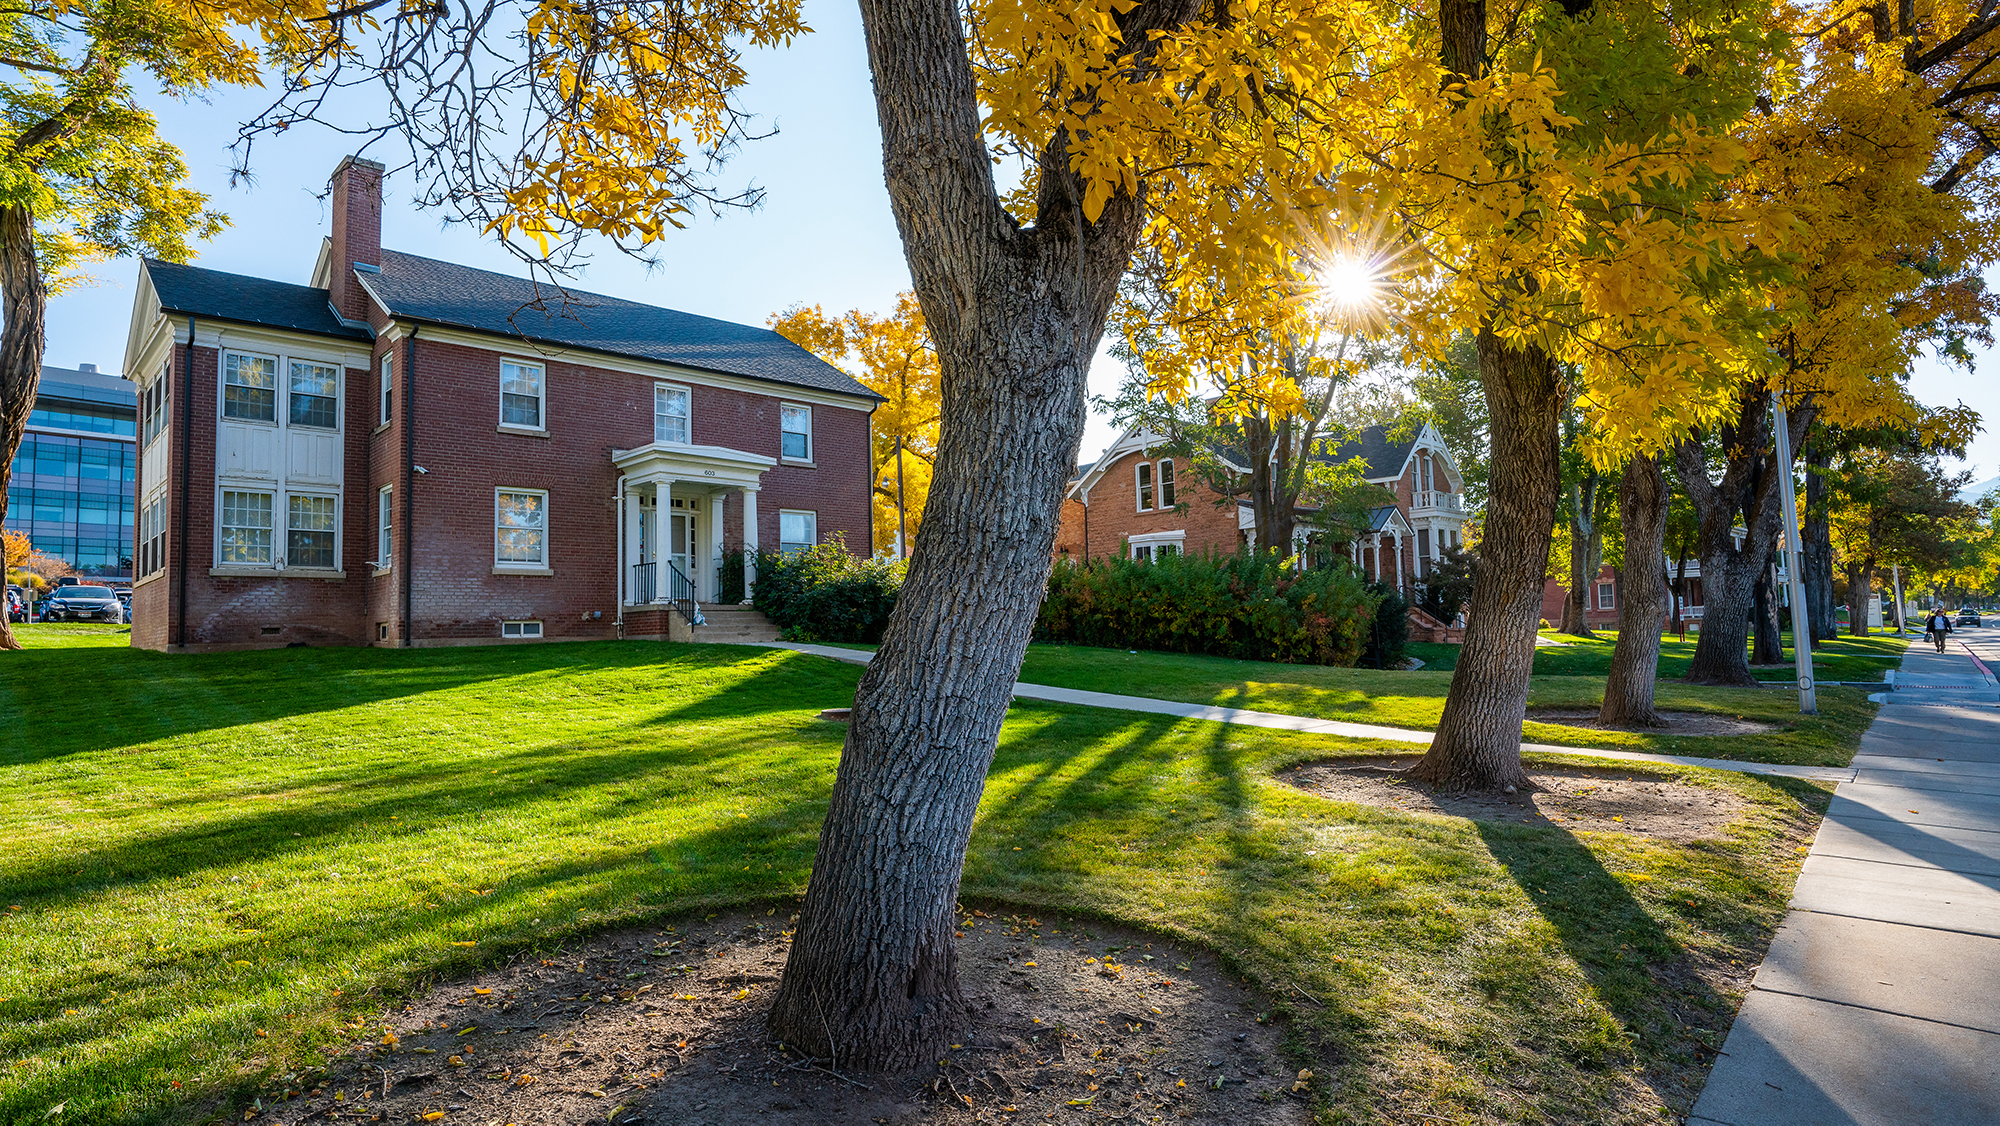 photo of the black cultural center on the University of Utah's campus with fall leaves on the trees outside the red brick building.